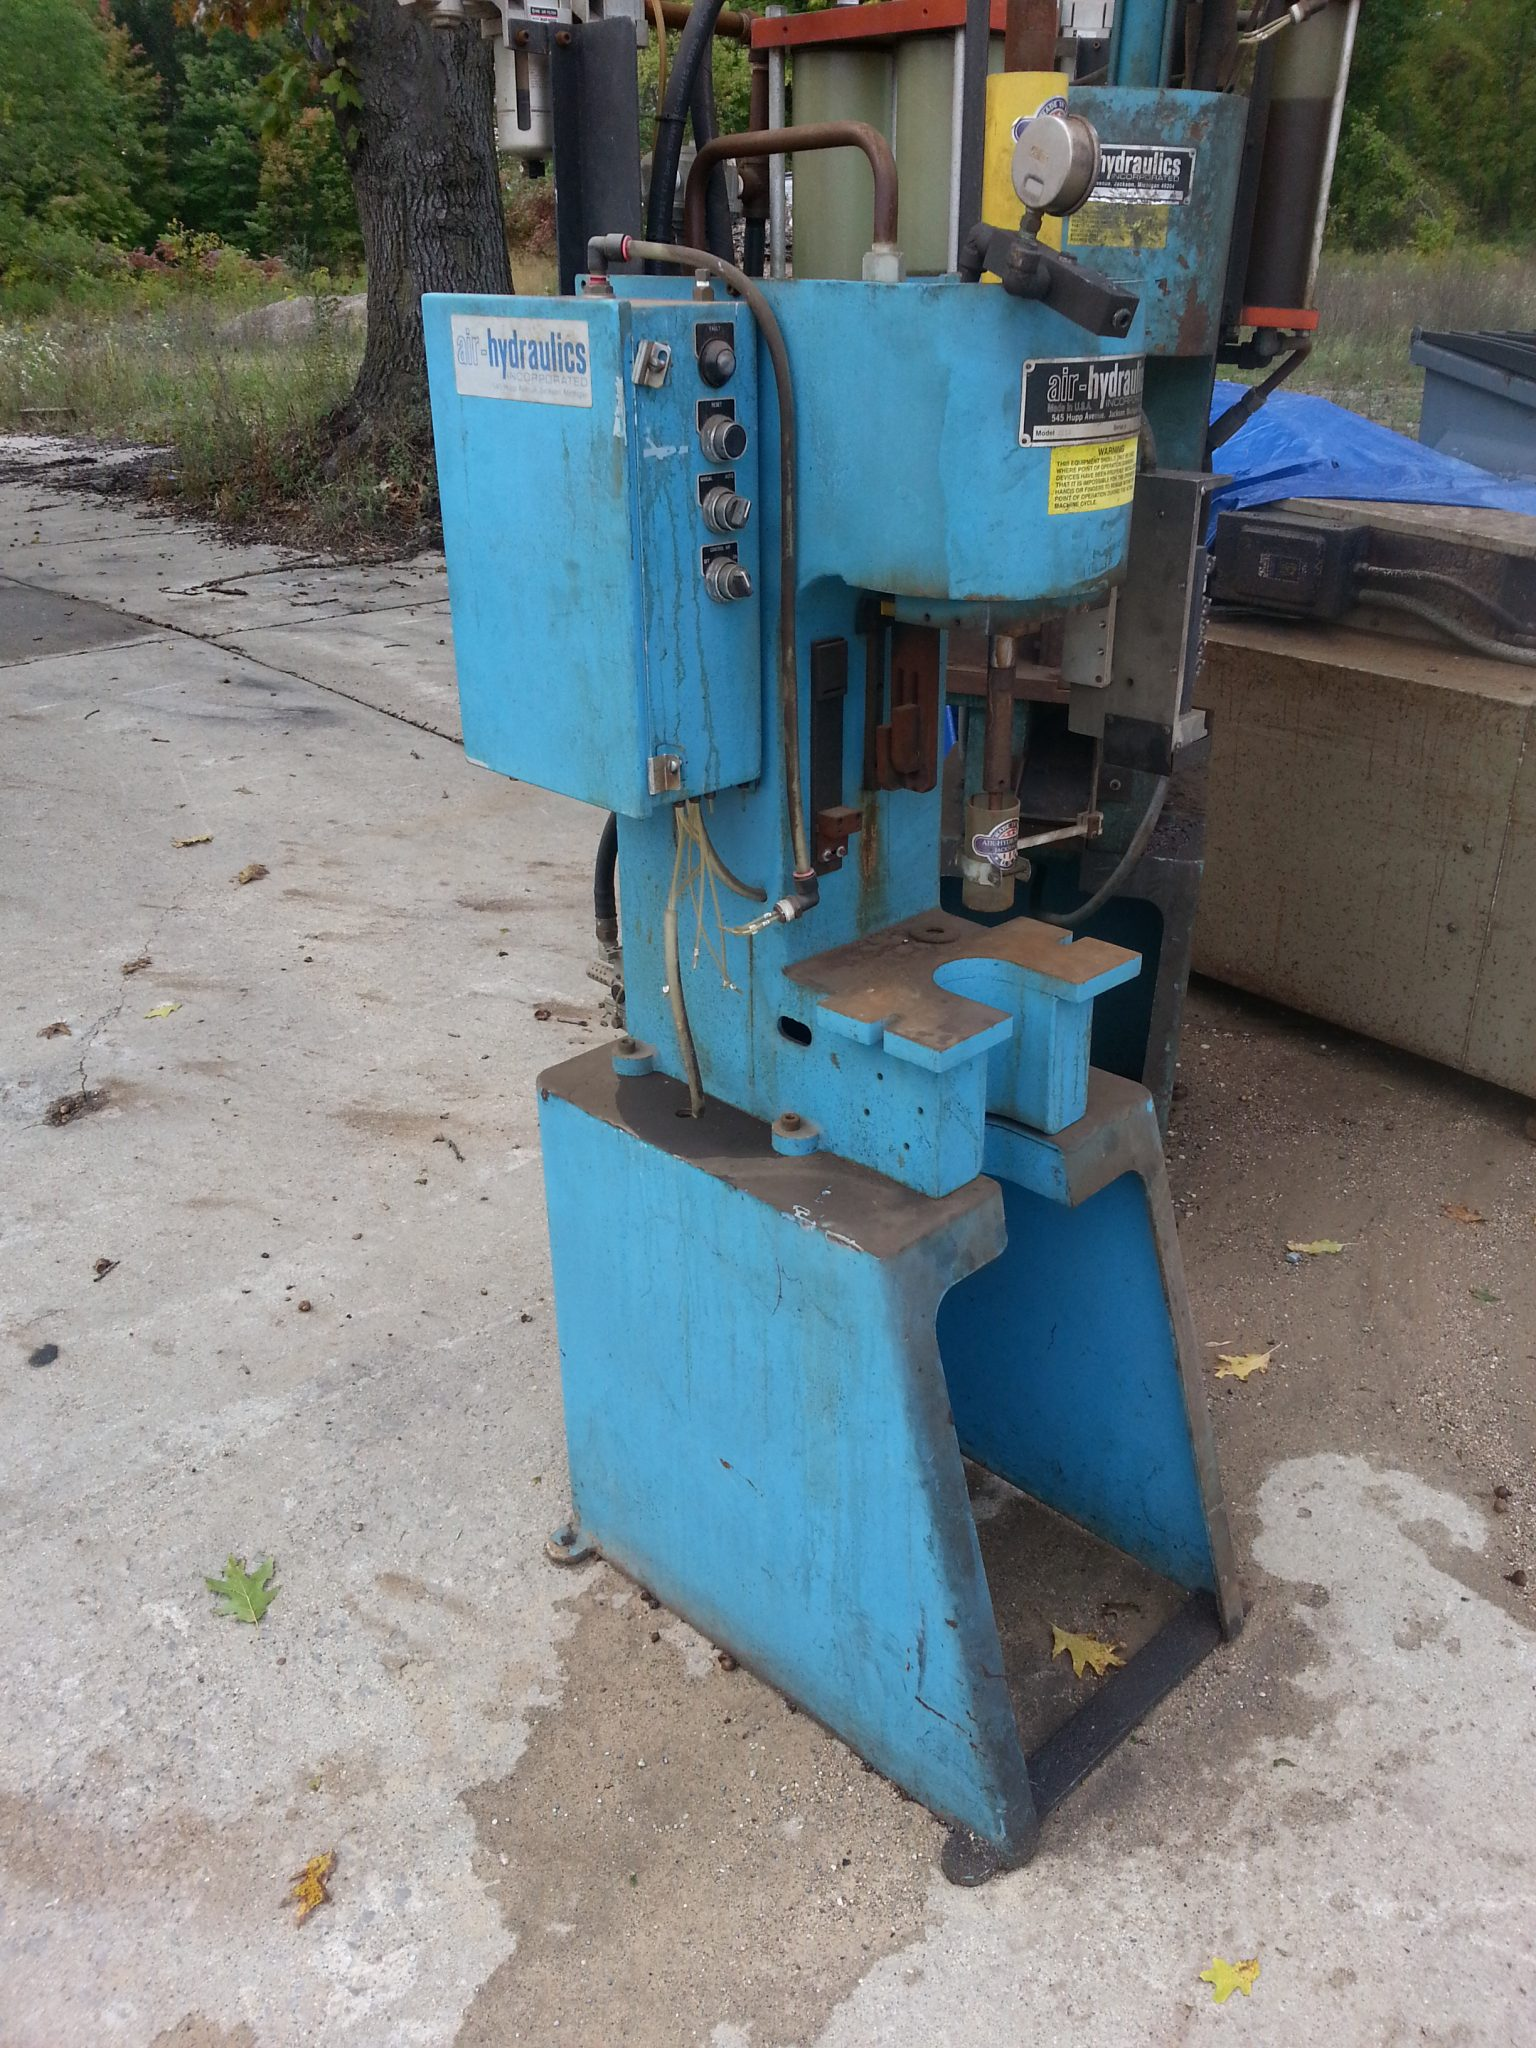 Hydraulic Press For Sale | Affordable Machinery | Page 2 of